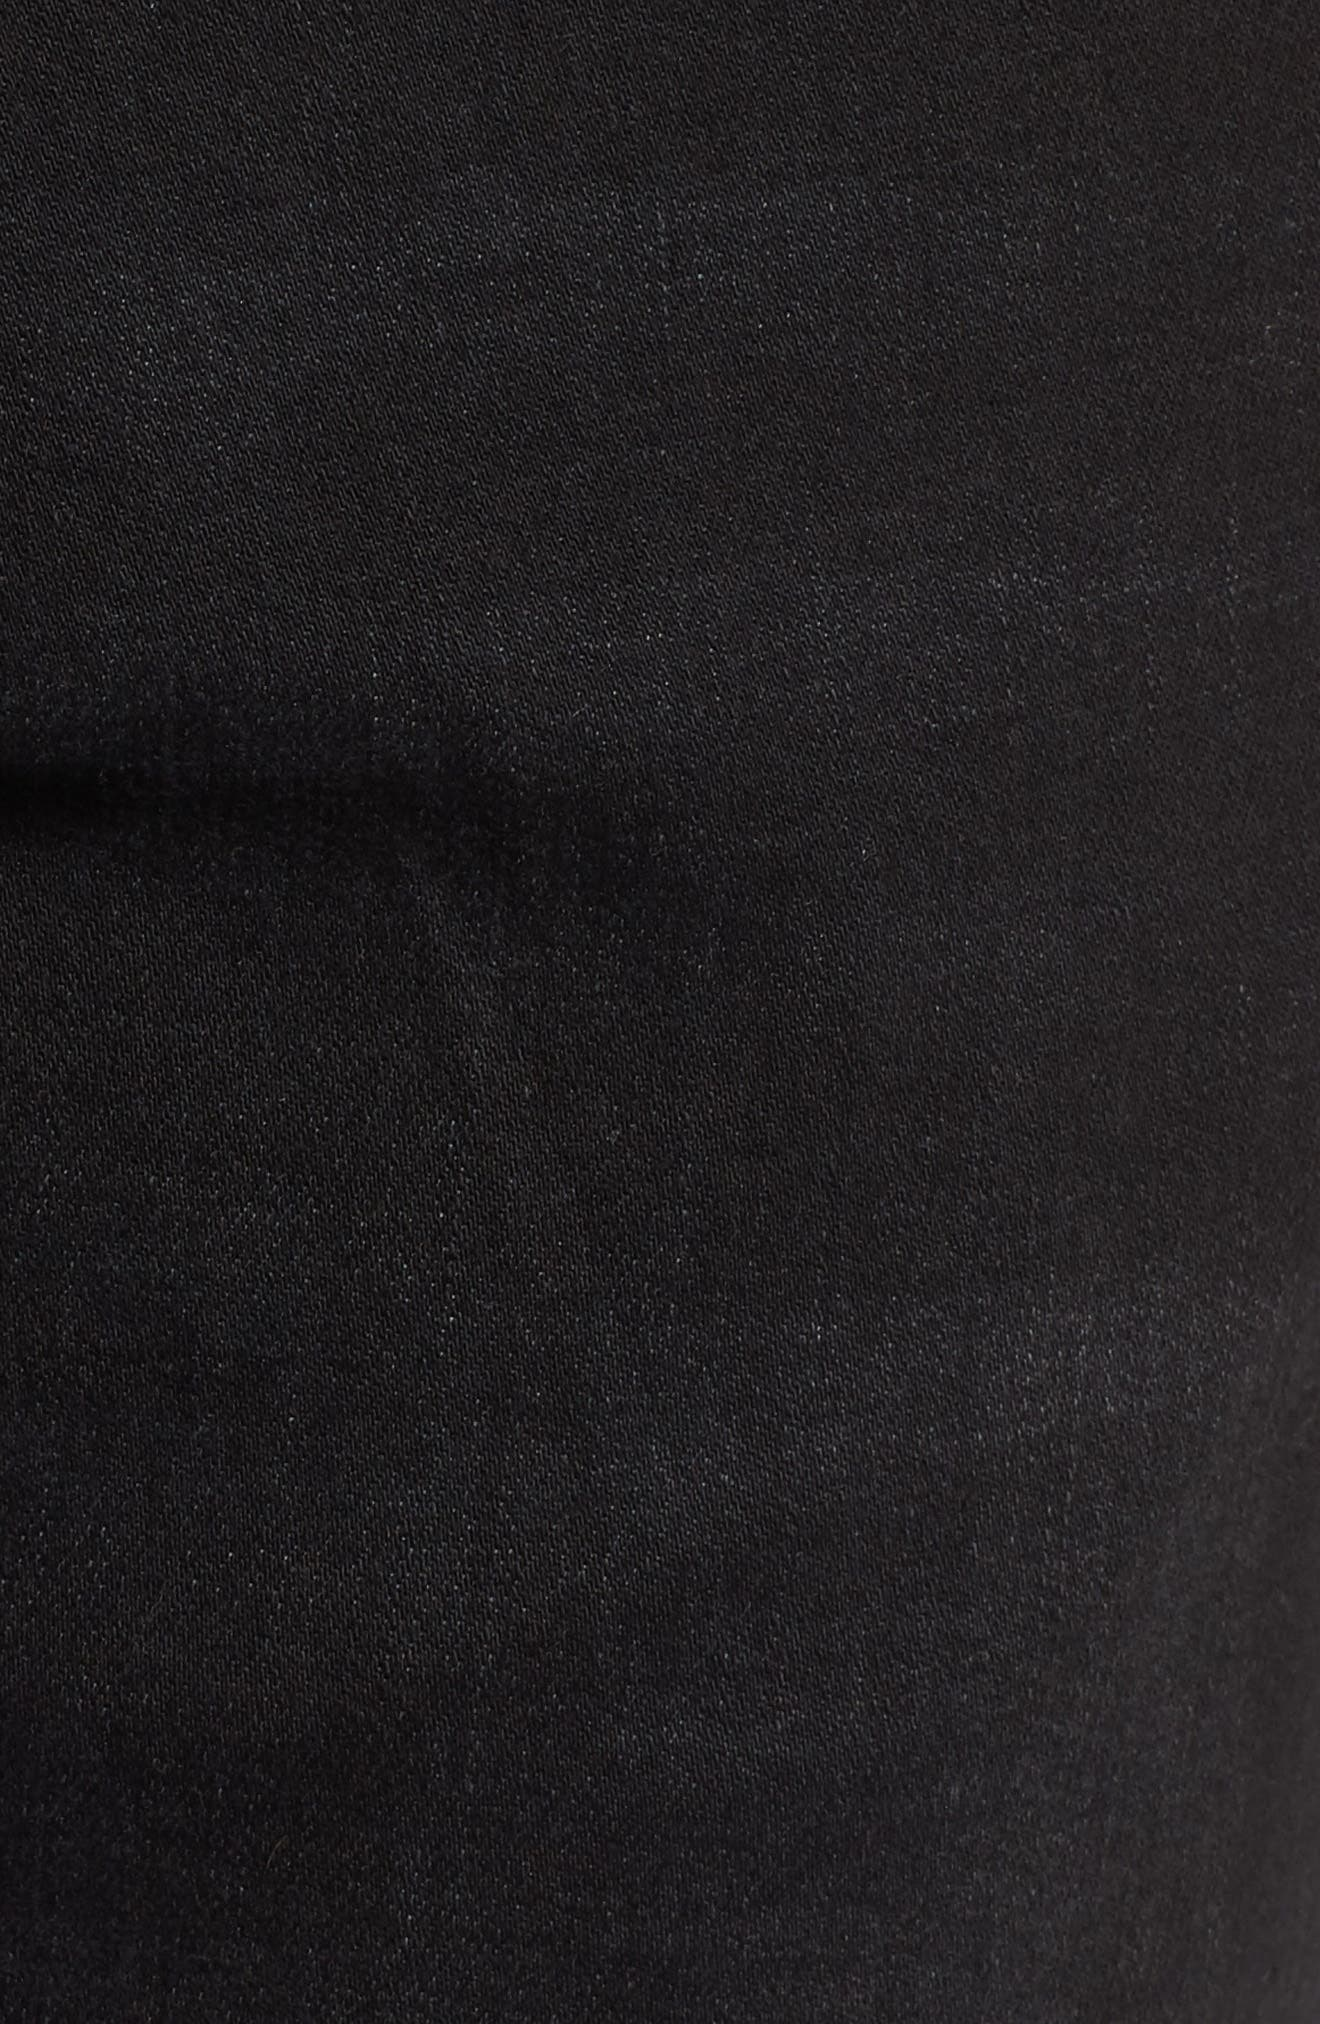 Relaxed Fit Jeans,                             Alternate thumbnail 5, color,                             002